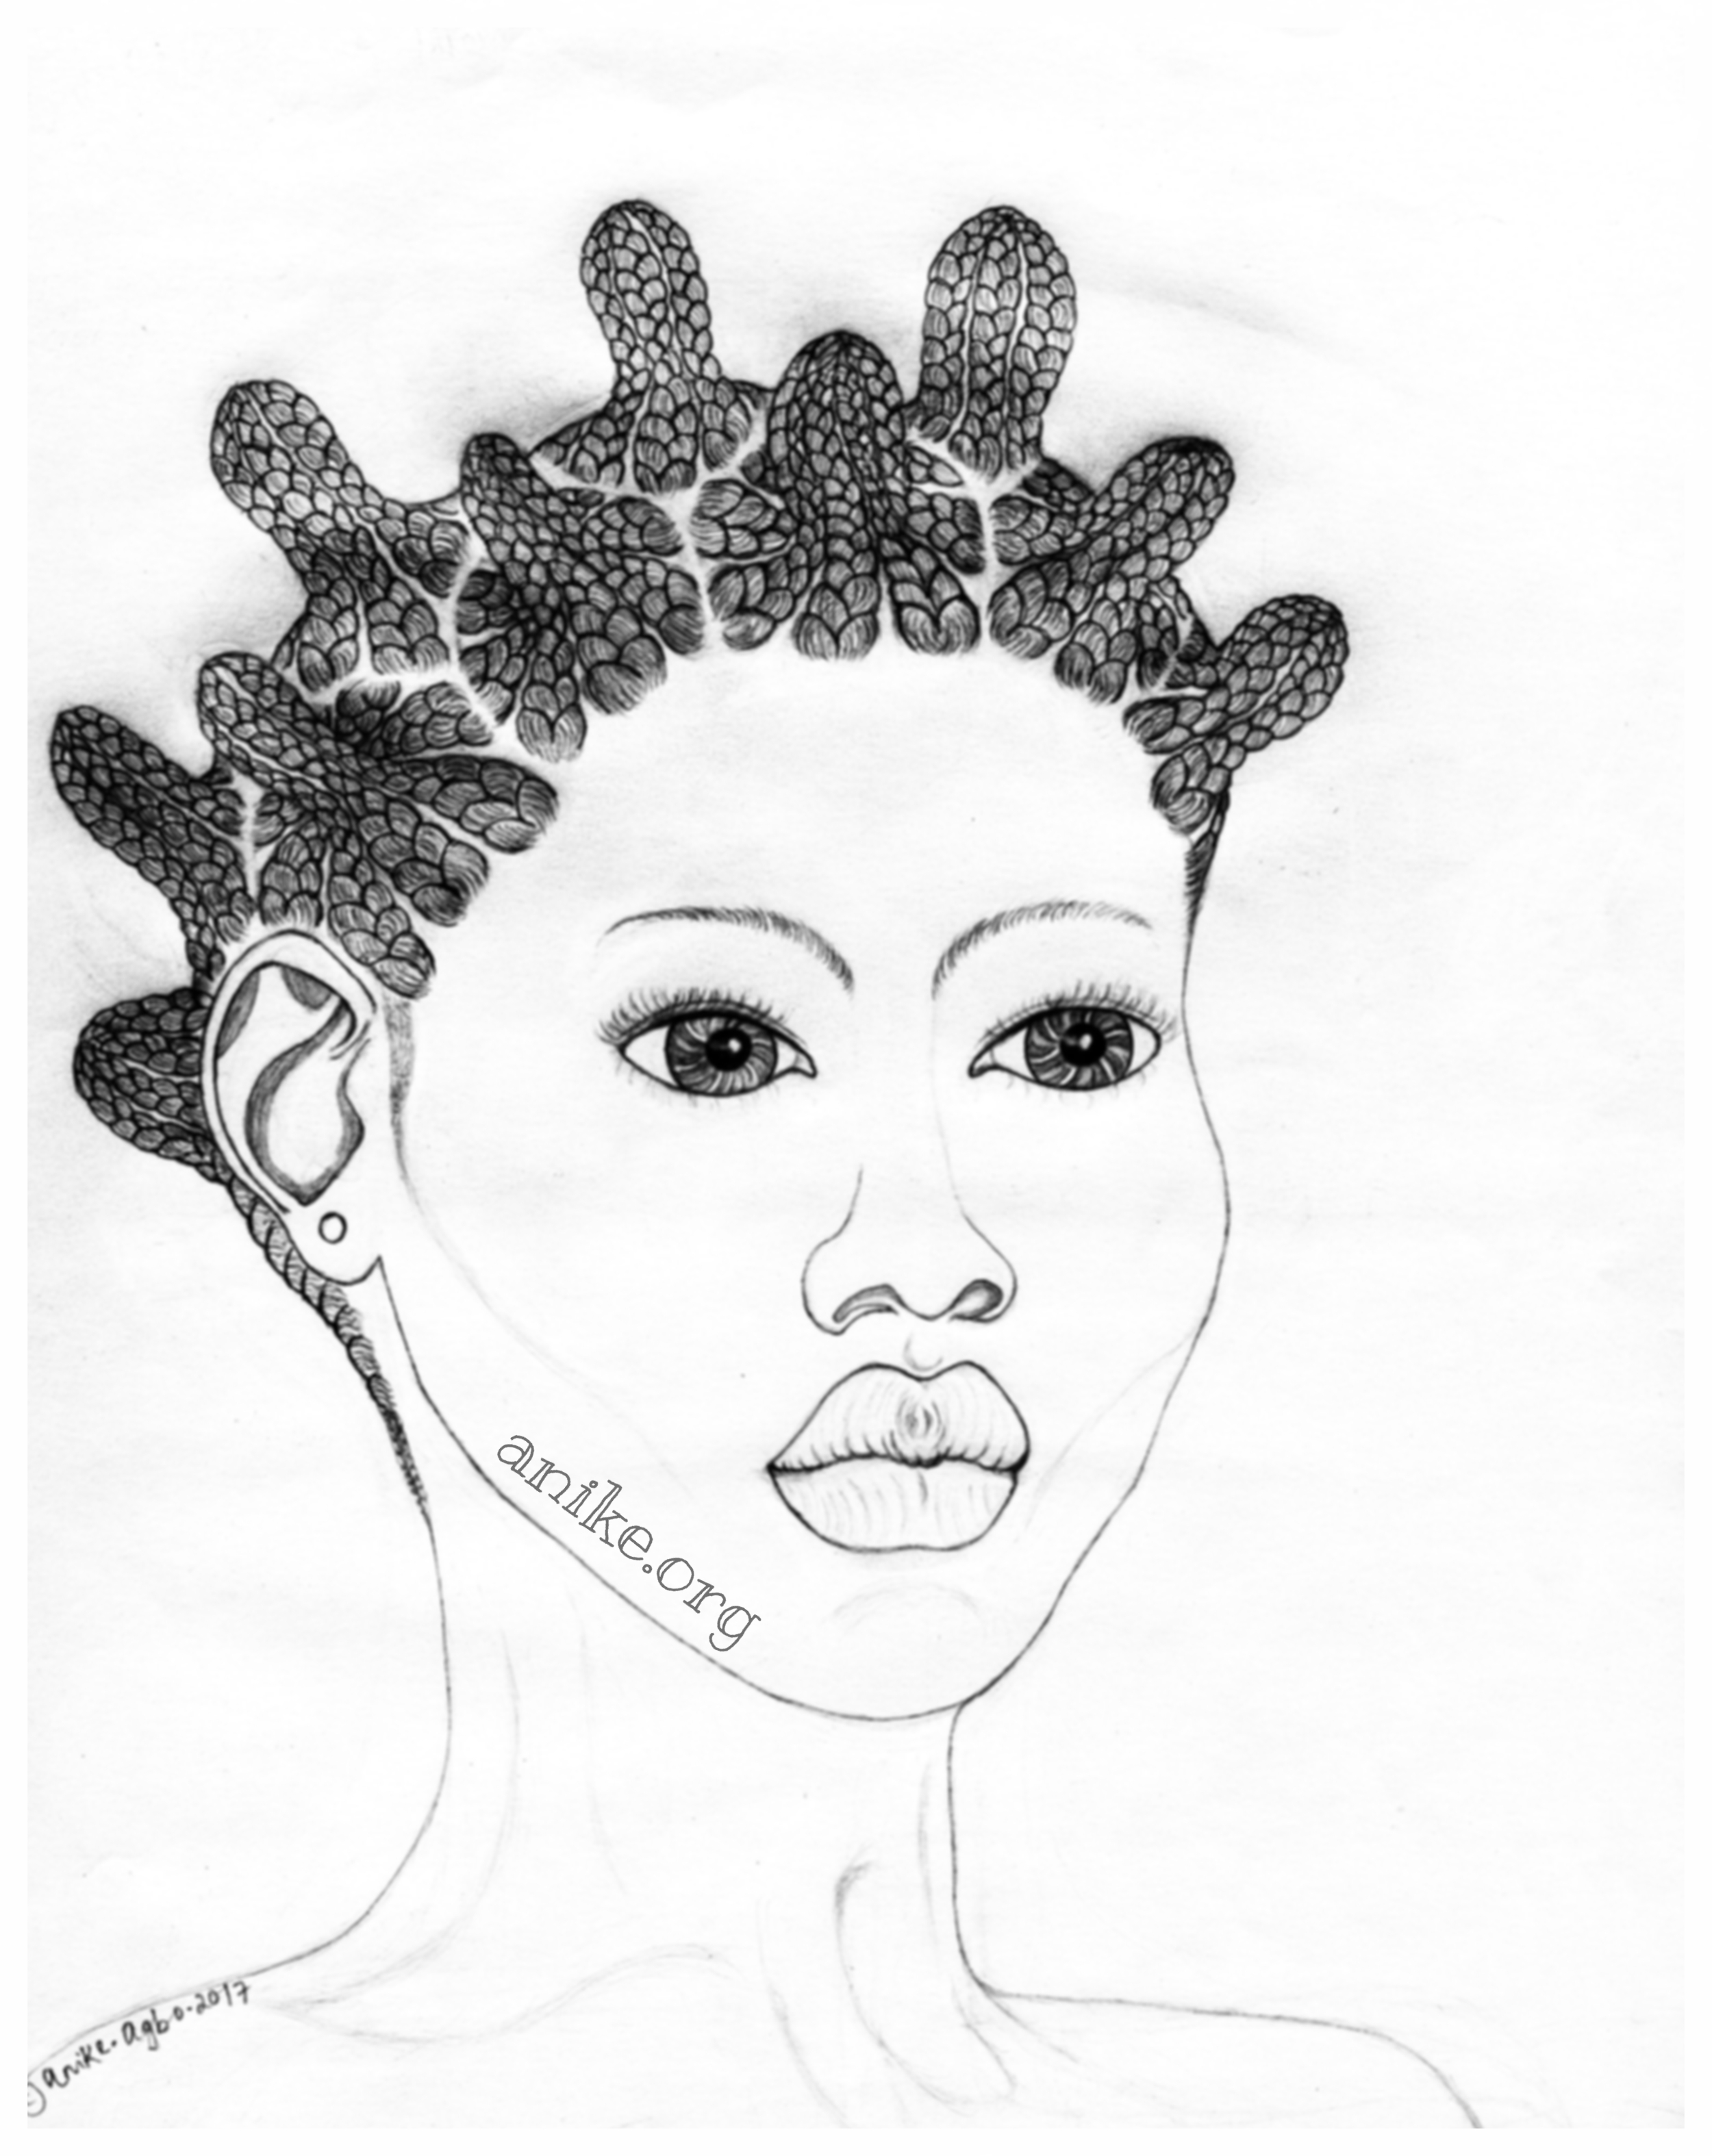 AKÓWONJO : COLLECTIVISM - This is a variation of the Sùkú hairstyle and portrays the concept of collectivism and the